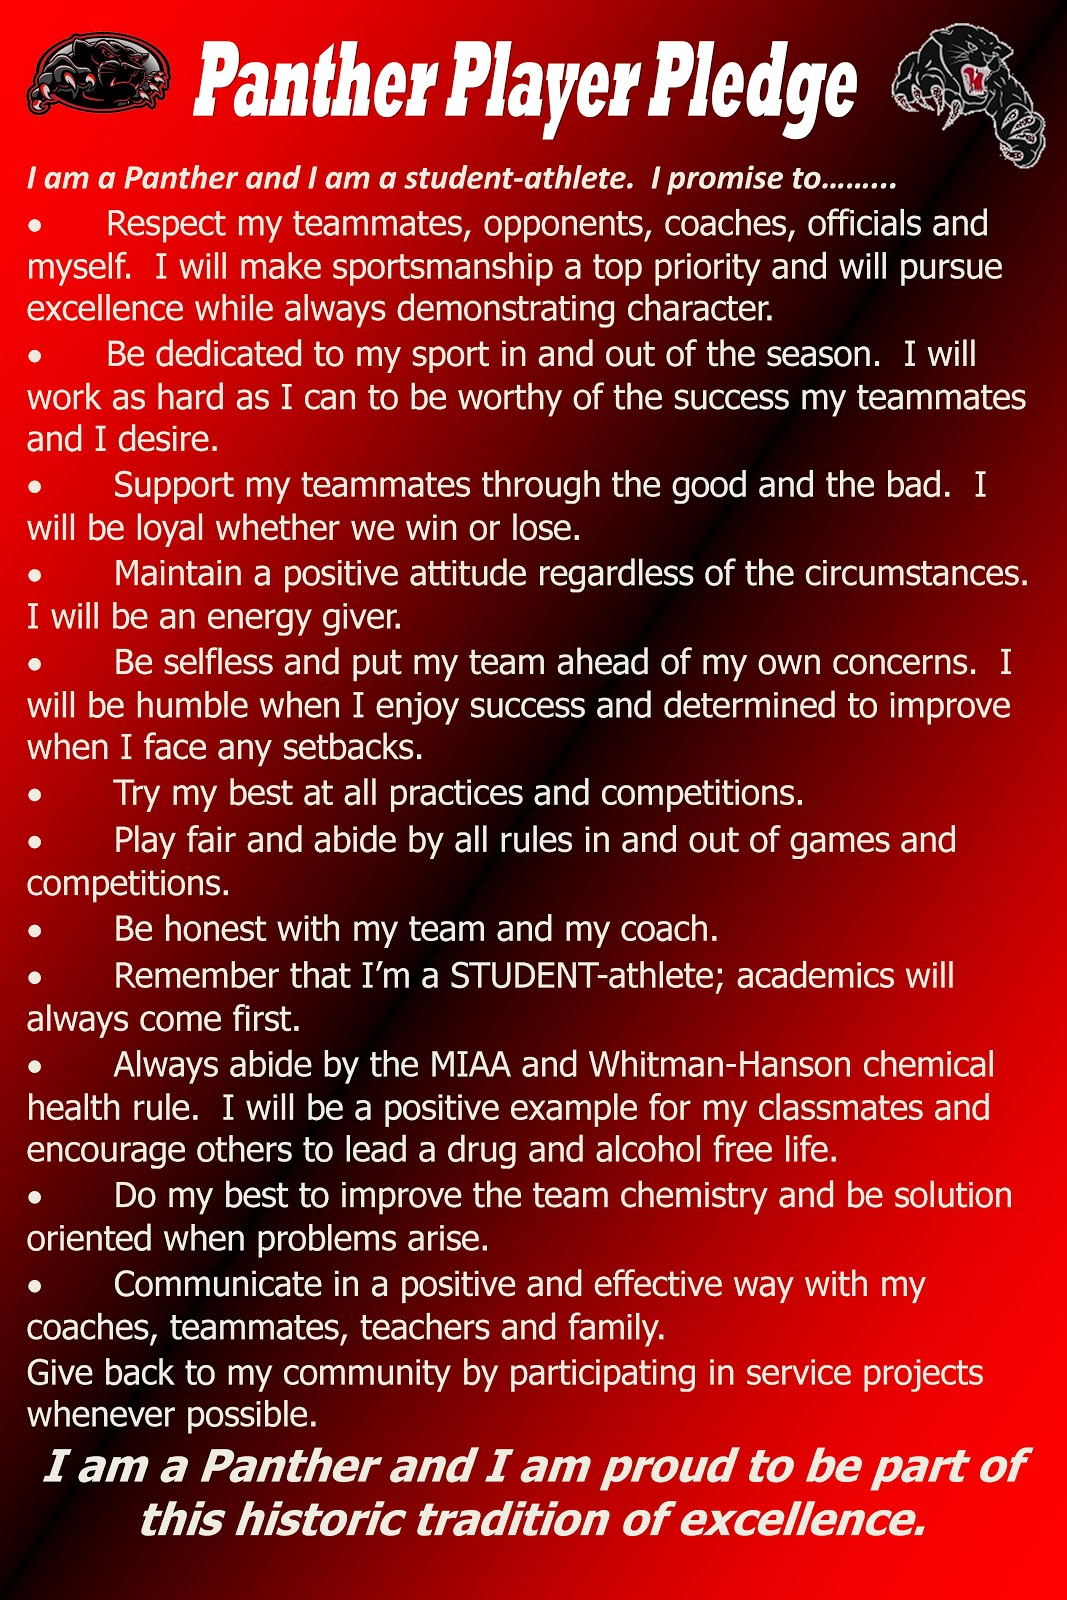 Panther Player Pledge